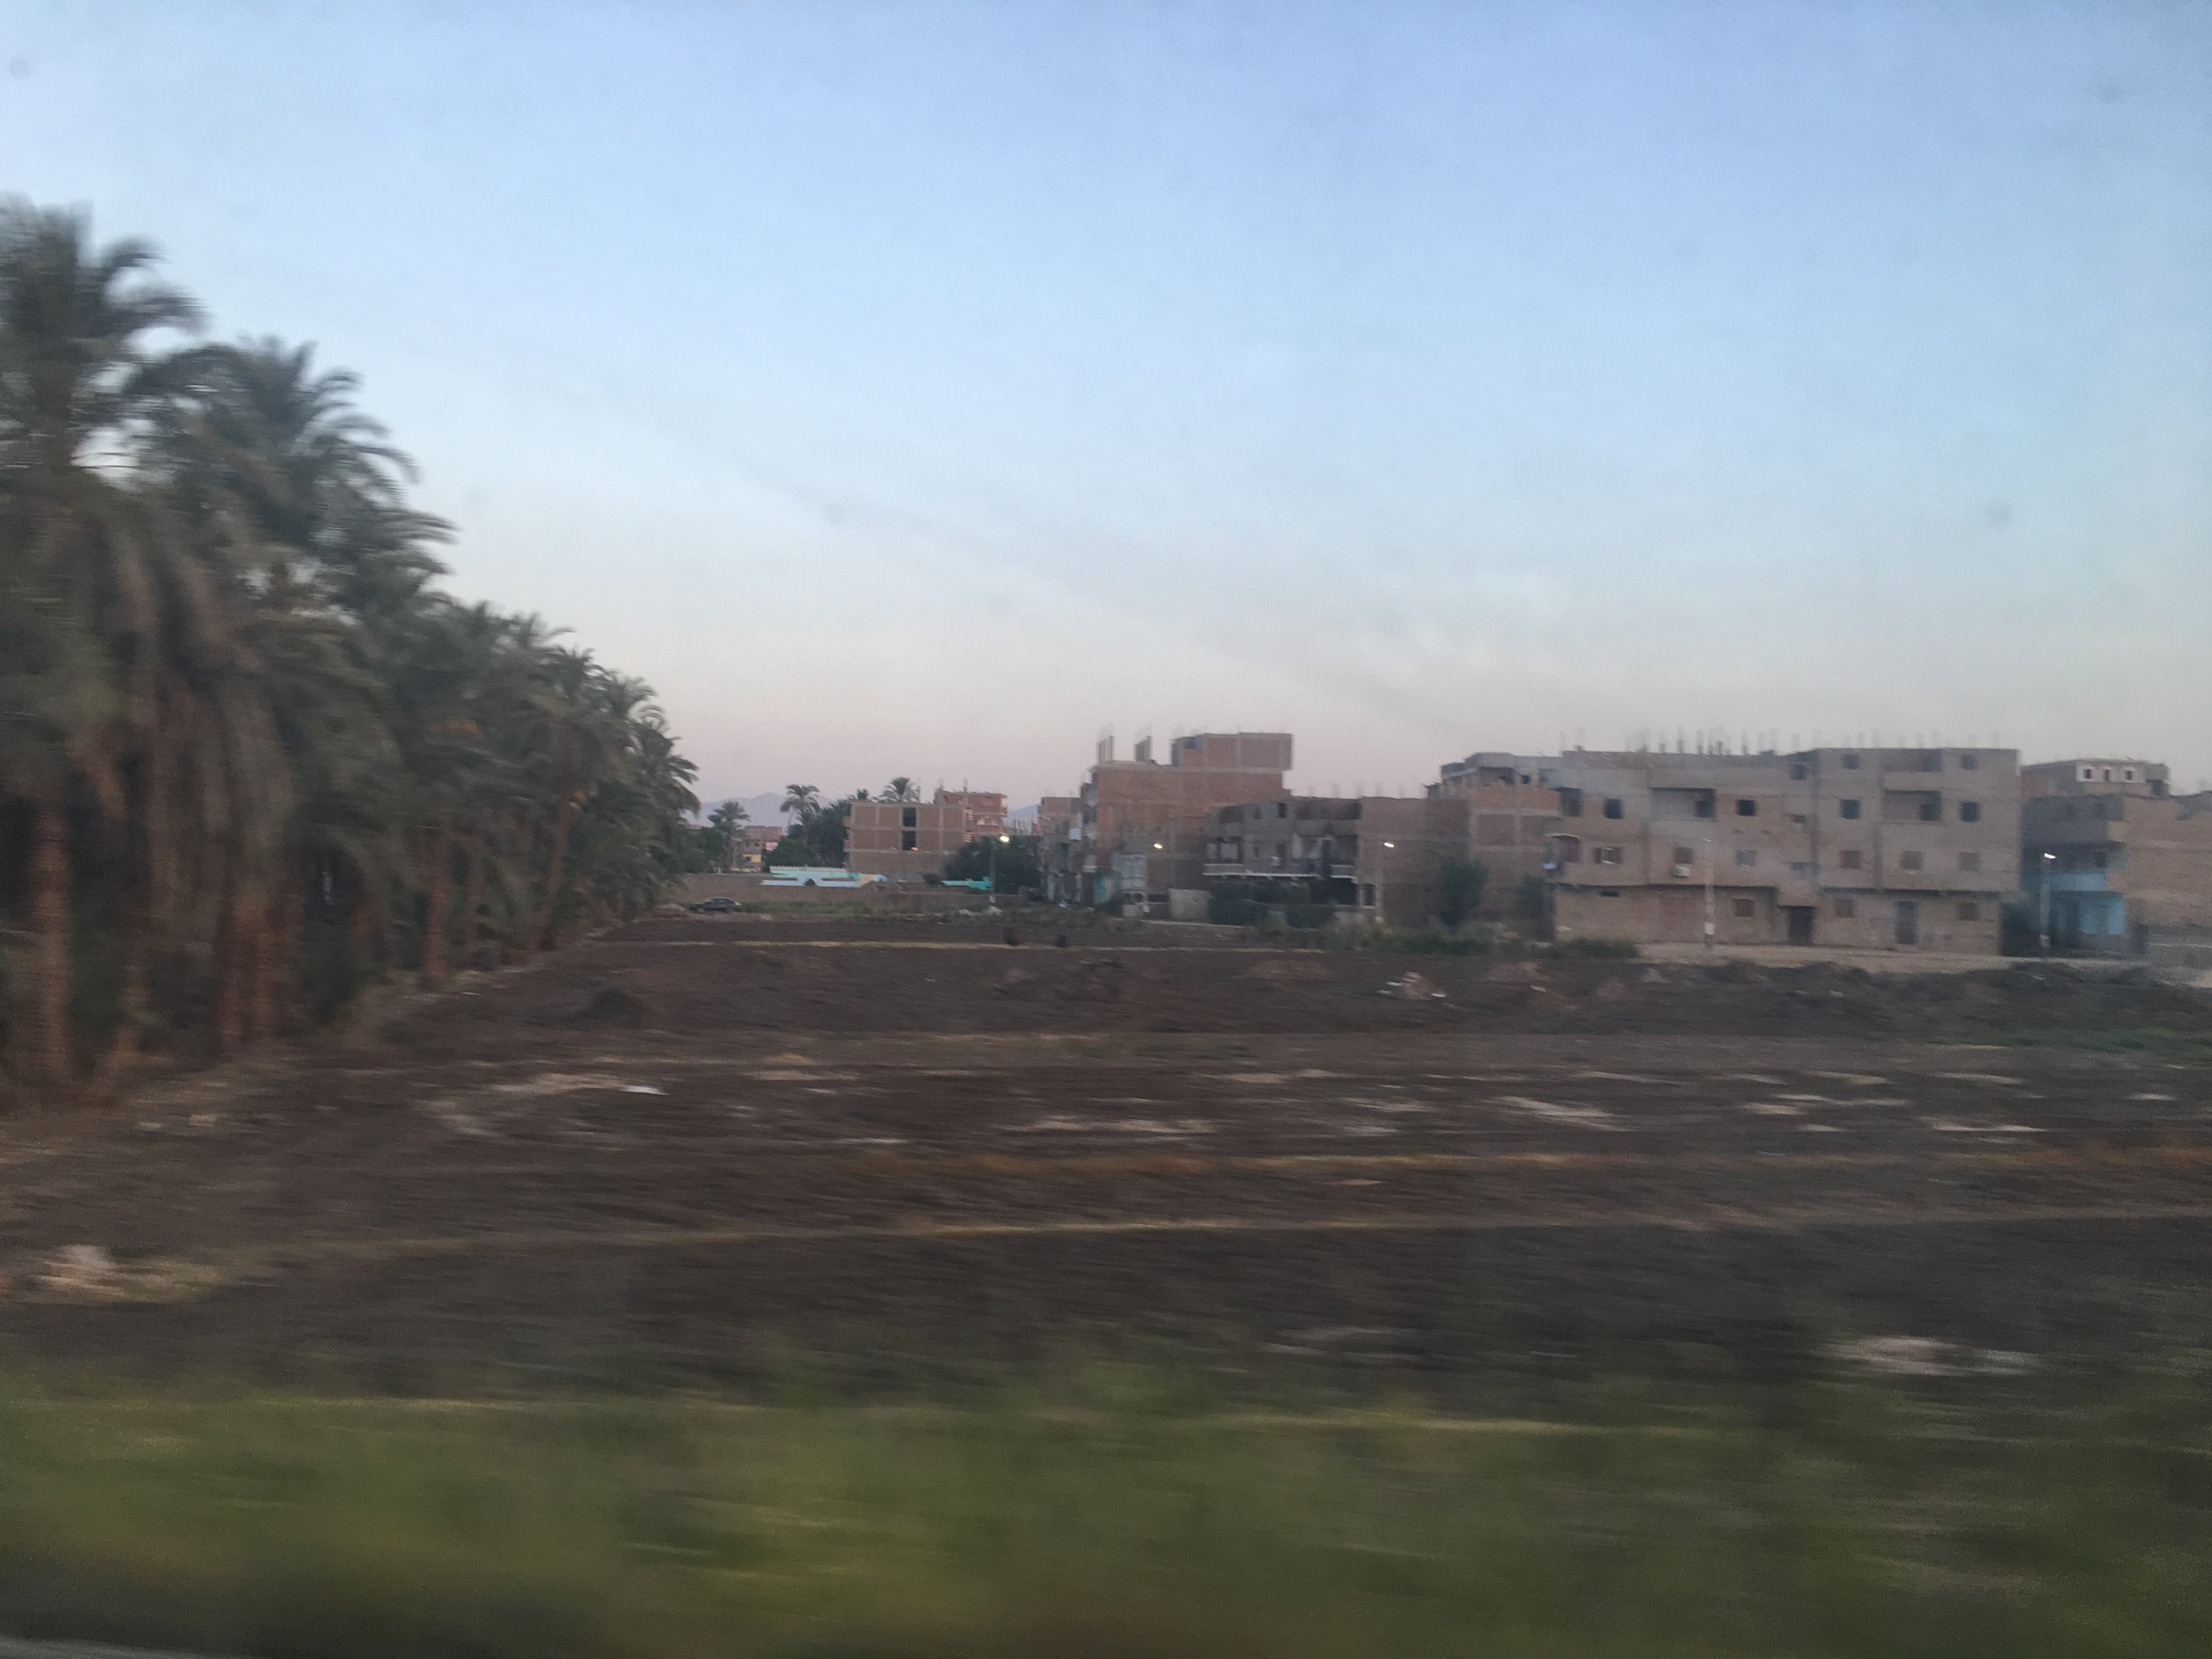 The Egyptian country side flew by outside the train window.